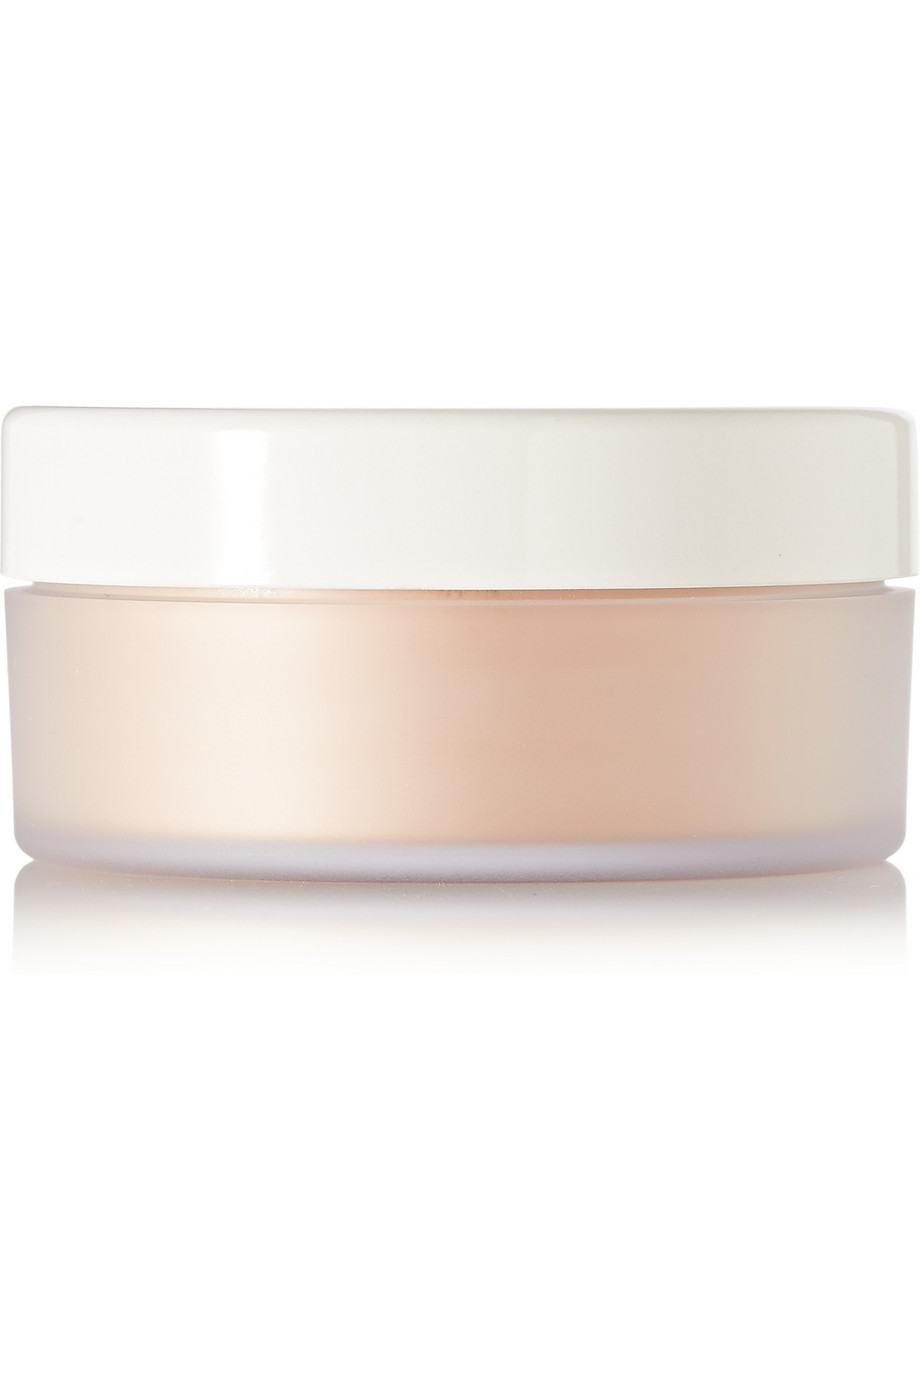 日本未入荷アイテム RMS BEAUTY Tinted Un Powder 9g